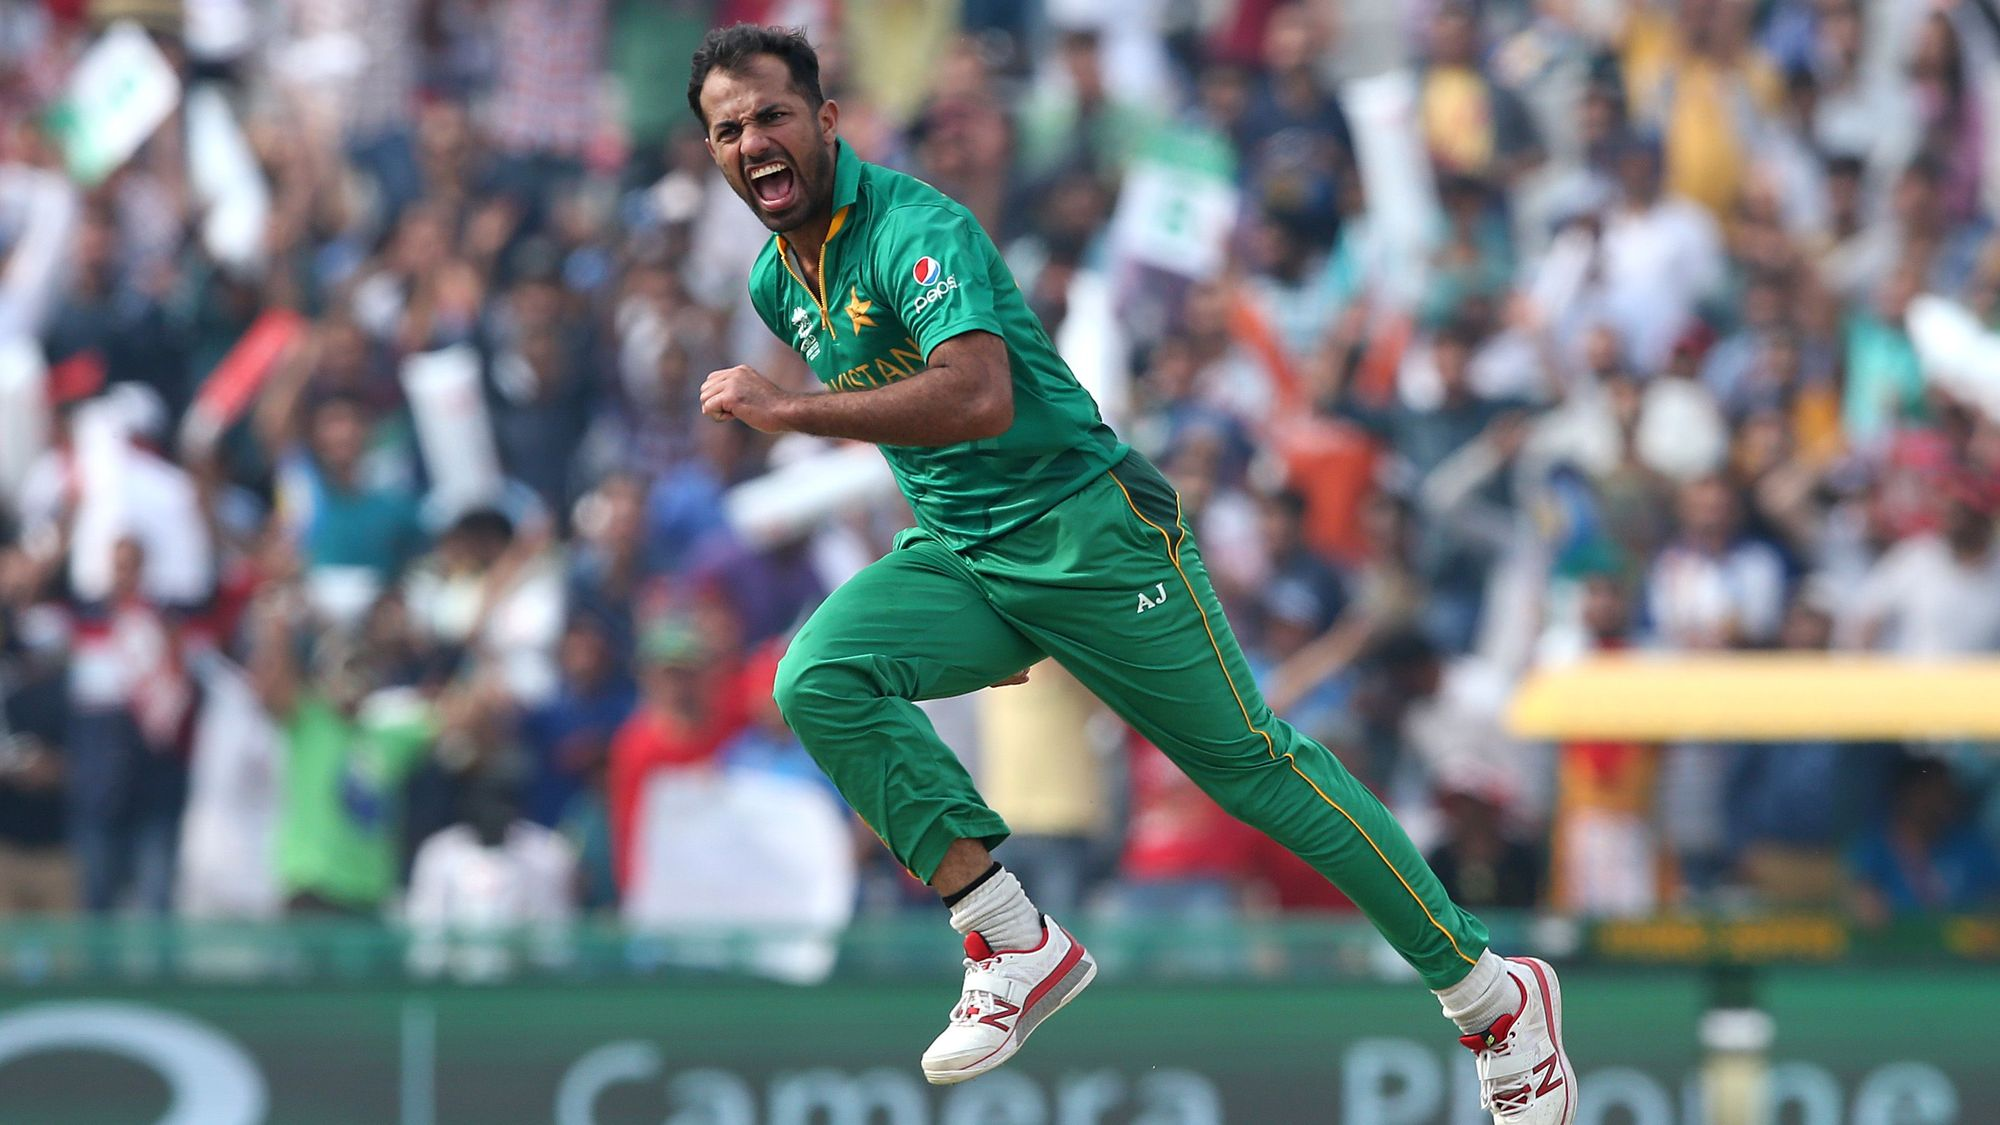 Resurgent Wahab determined to redeem himself at the World Cup